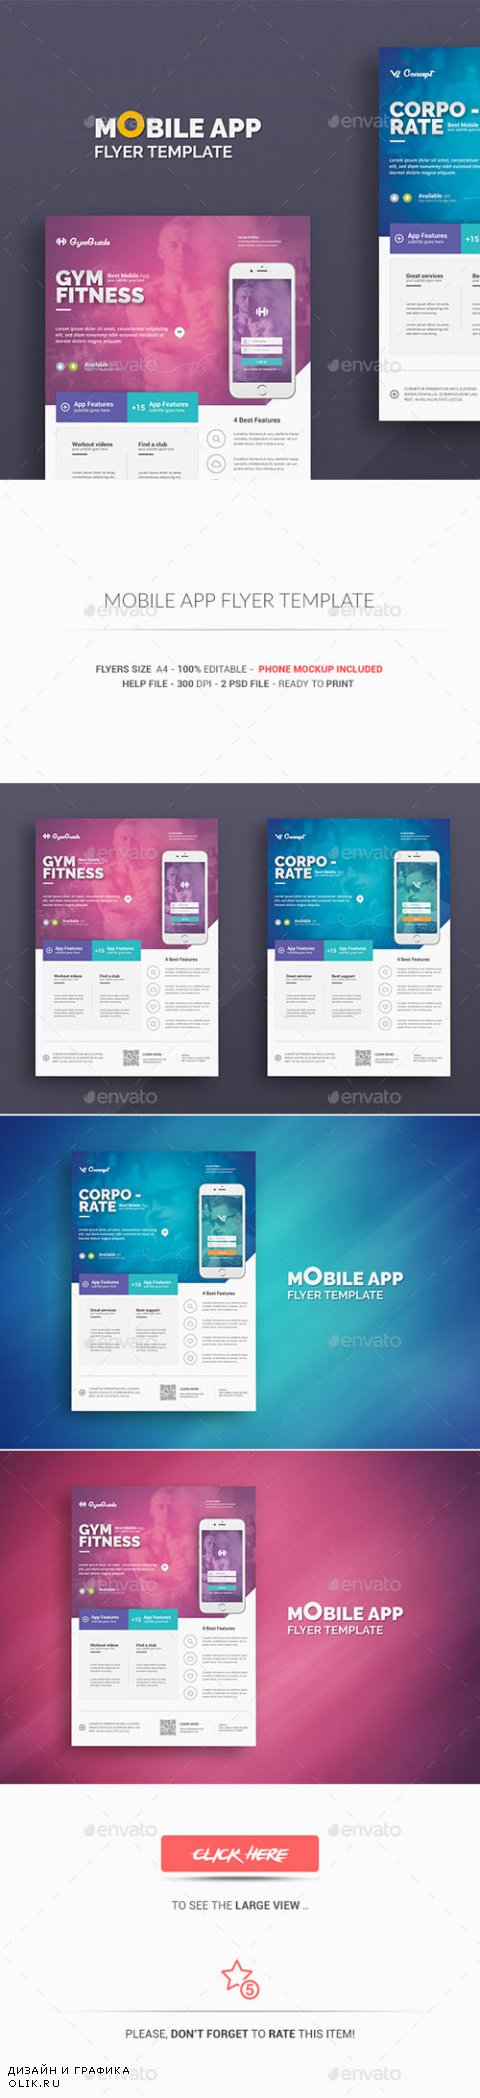 Mobile App Flyer Template 18012836